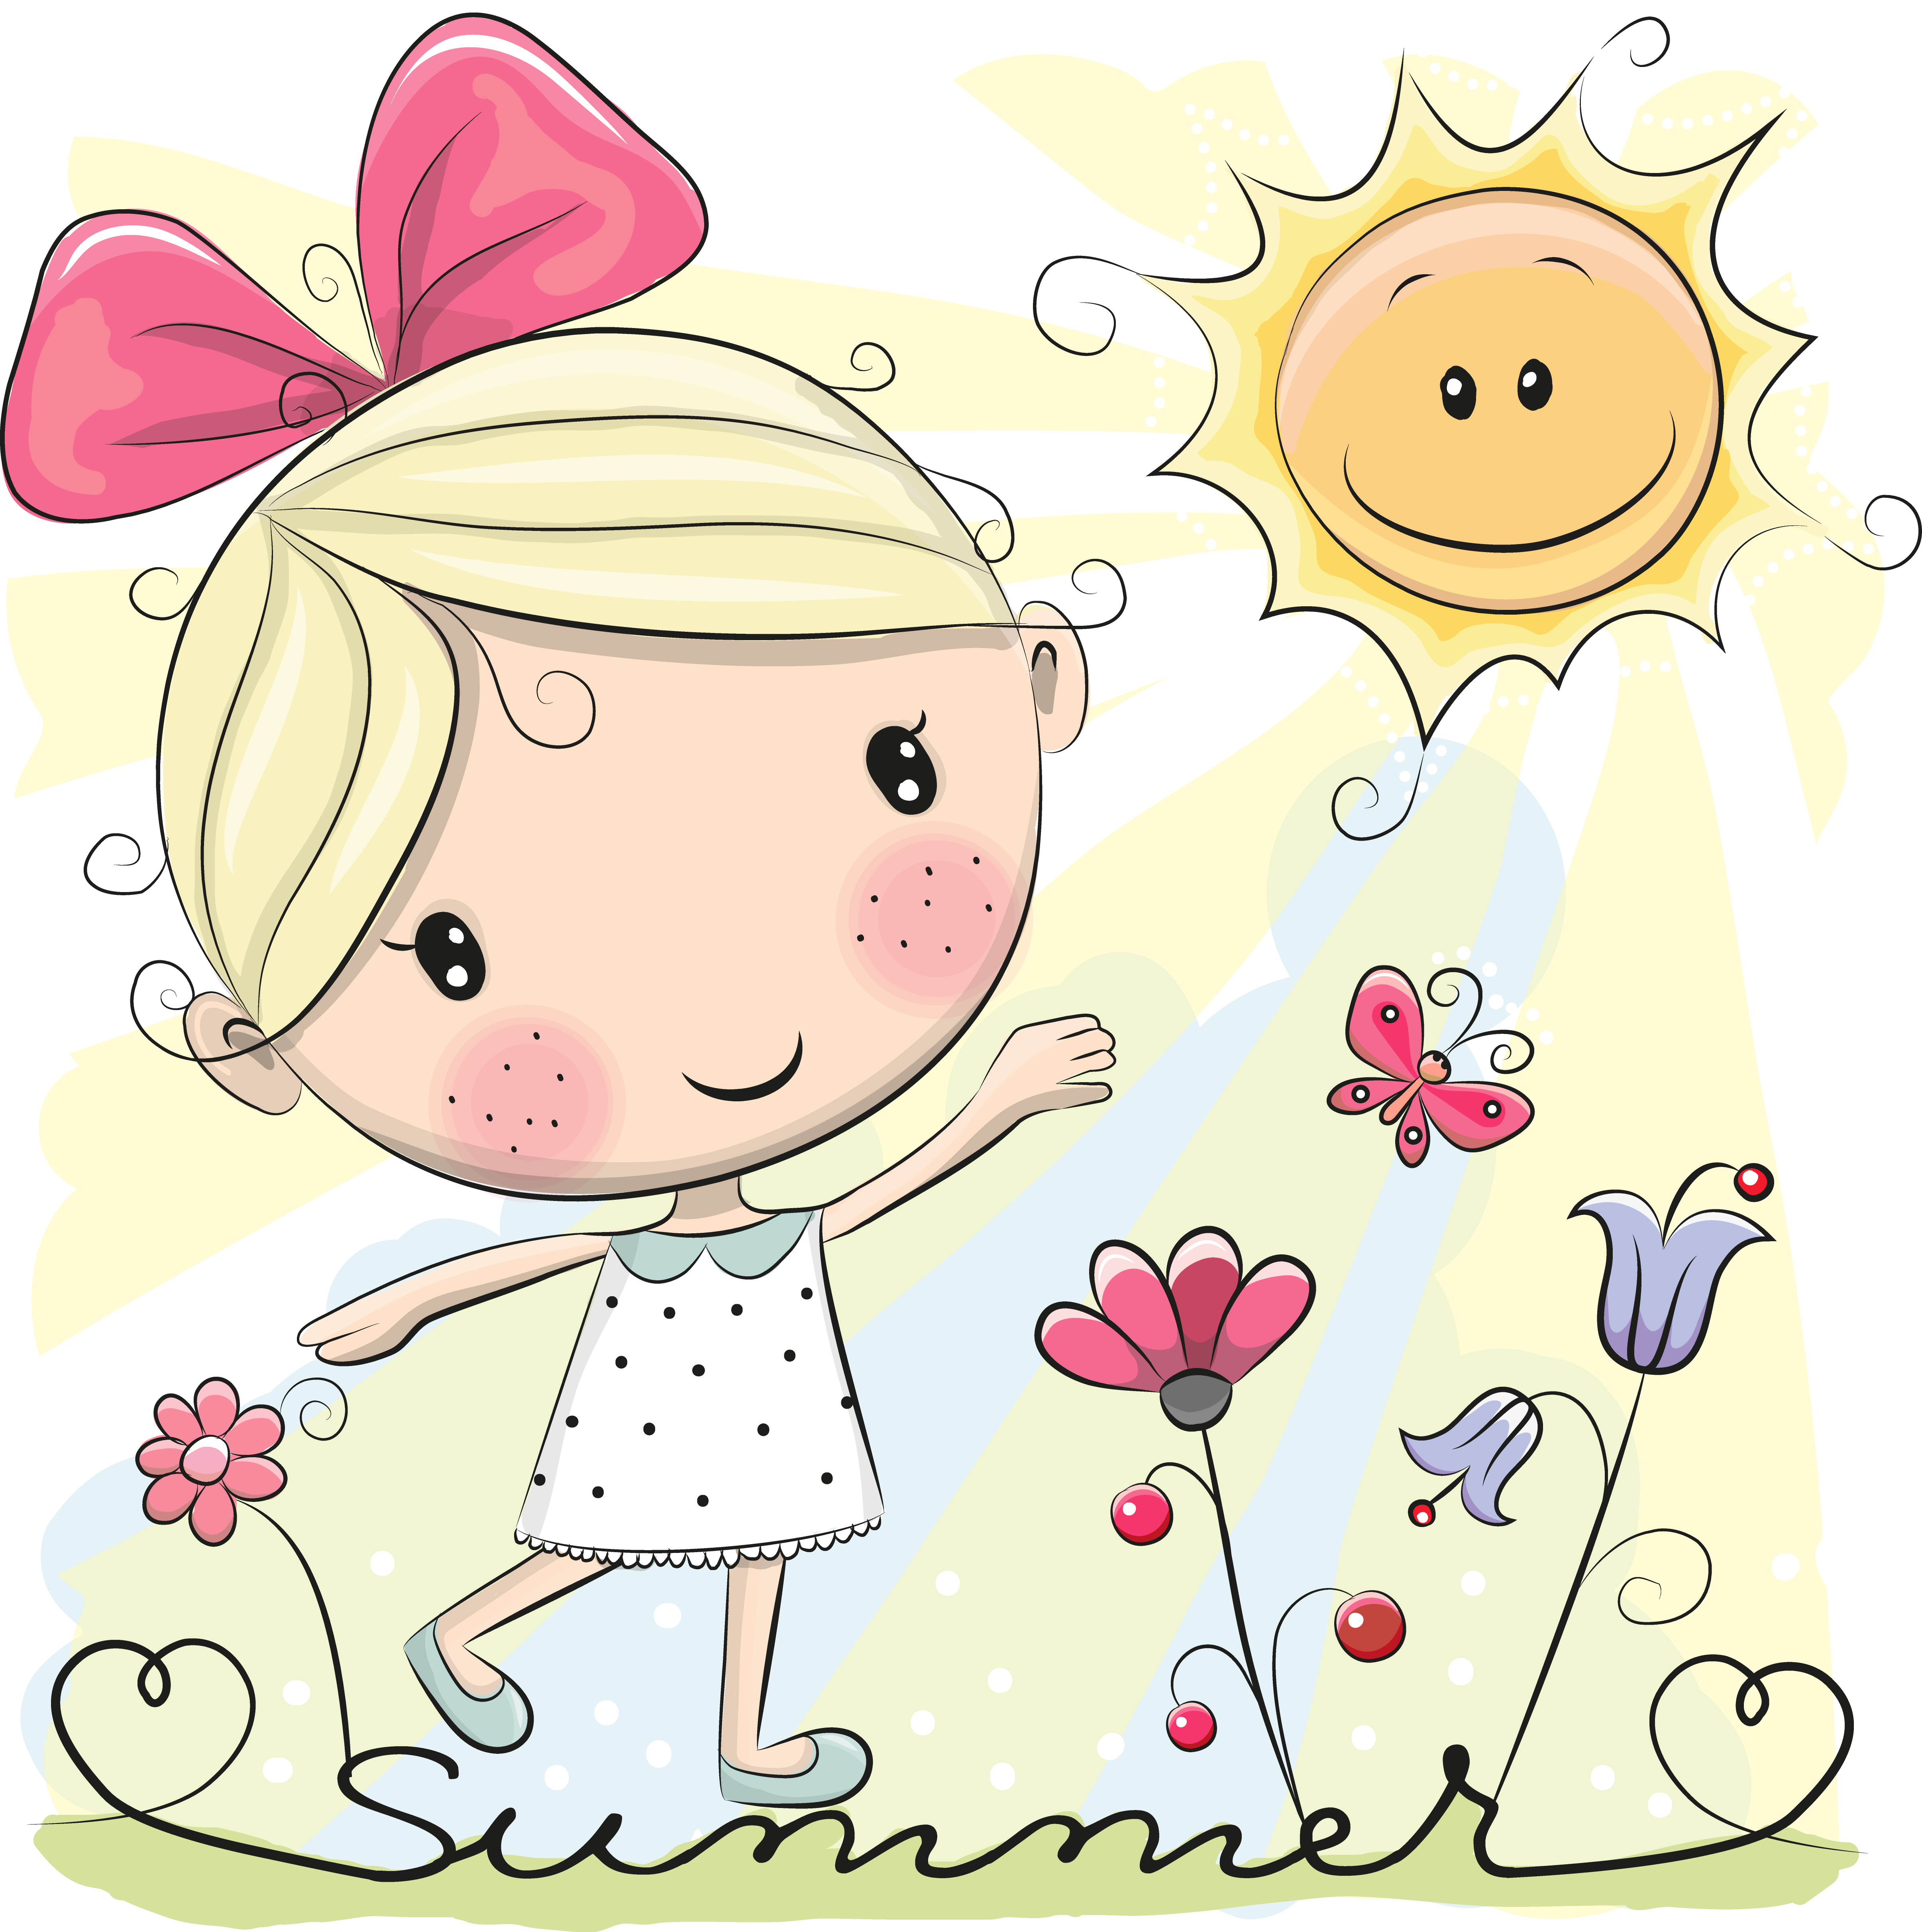 png transparent download Cartoon illustration hand painted. Vector baby emotion